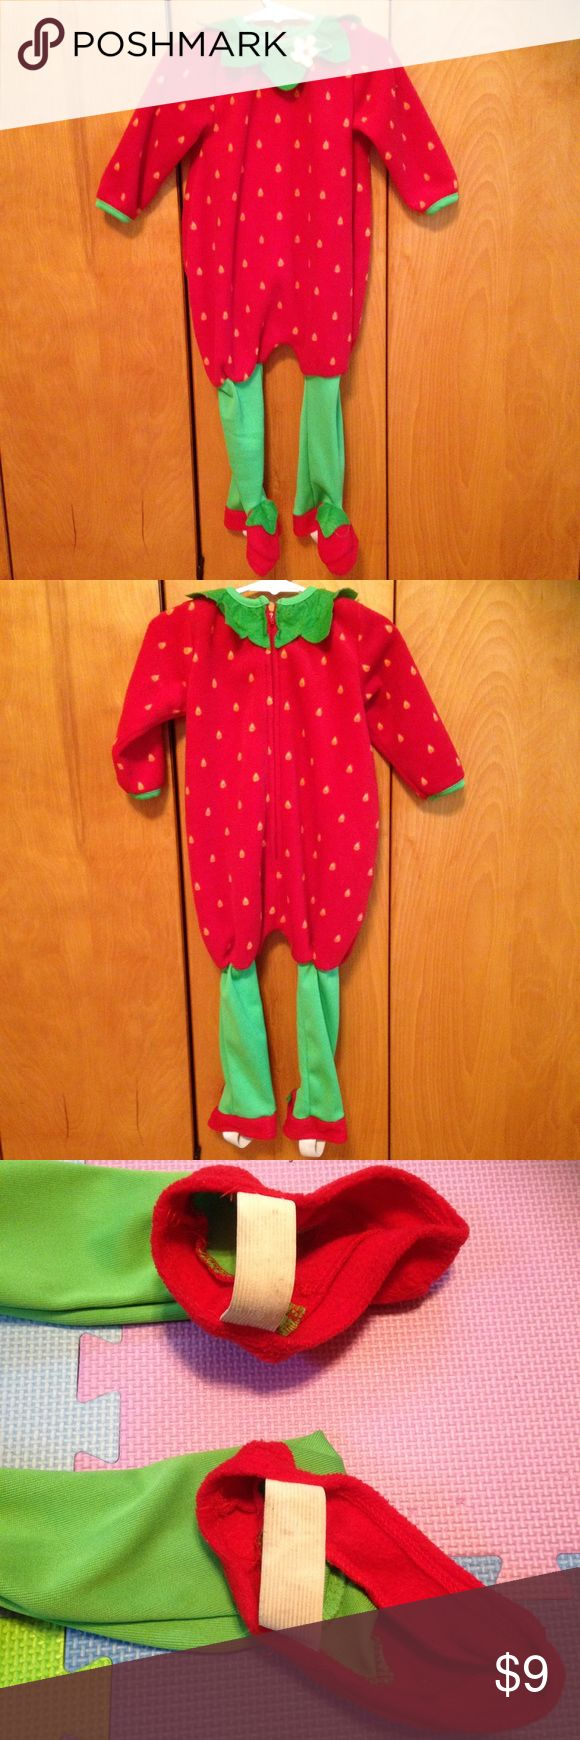 Fleece Strawberry Toddler Costume Your toddler will be adorable and warm as they wear this fleece strawberry Halloween costume. Has a felt collar and thick green tights with elastic straps to go under the shoes. In good condition. Straps have some staining due to wear but it doesn't affect the costume. Size 18 months but is quite long and could fit a 24 mo size. Baby Grand Costumes Halloween